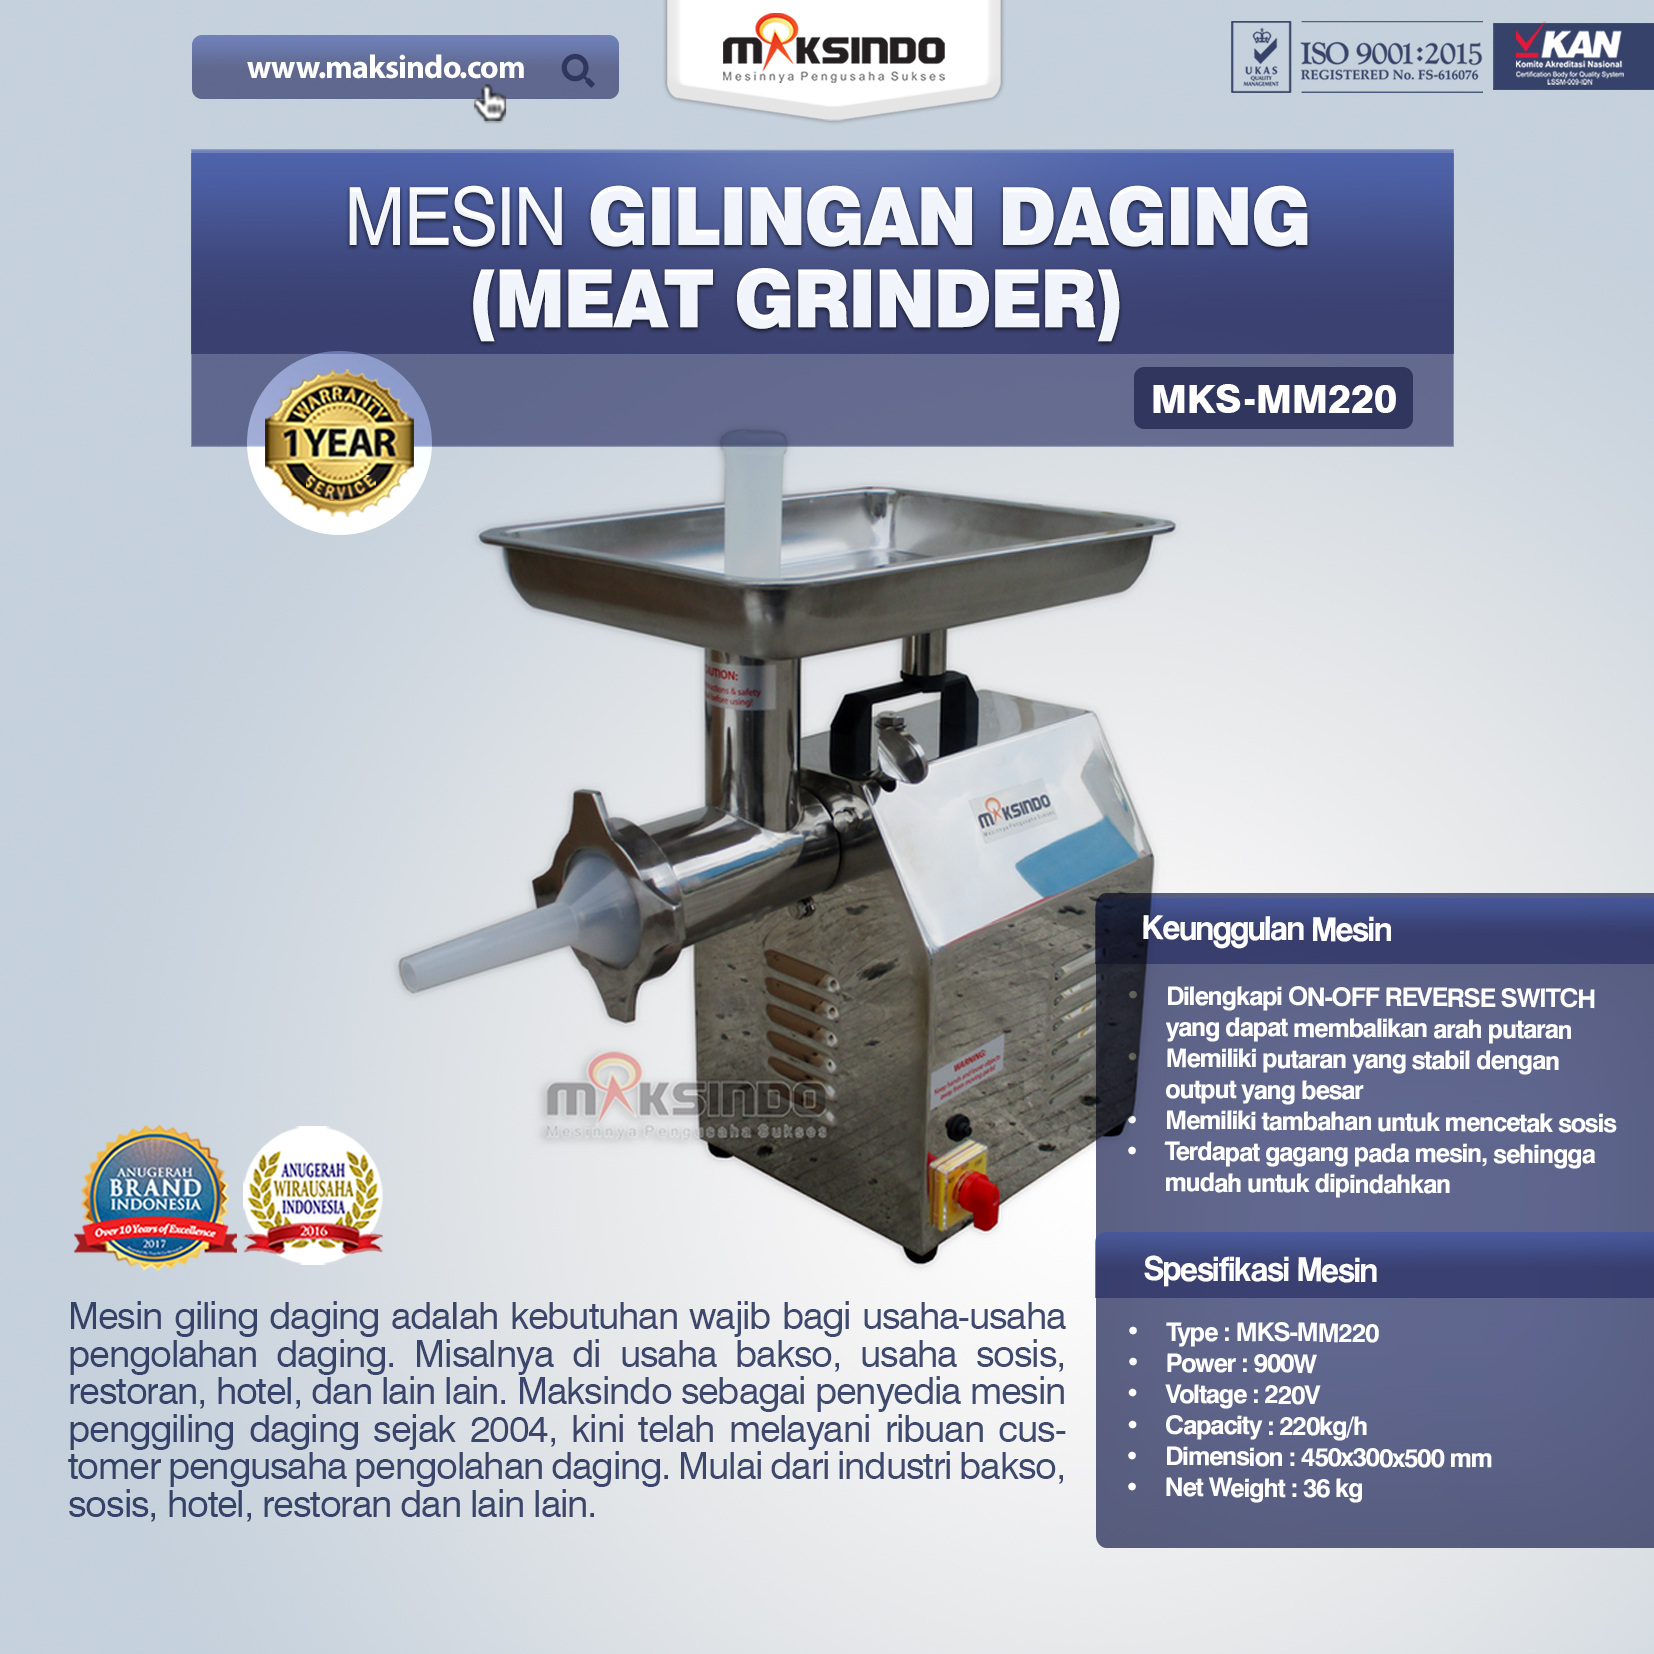 Mesin Giling Daging (Meat Grinder) MKS-MM220